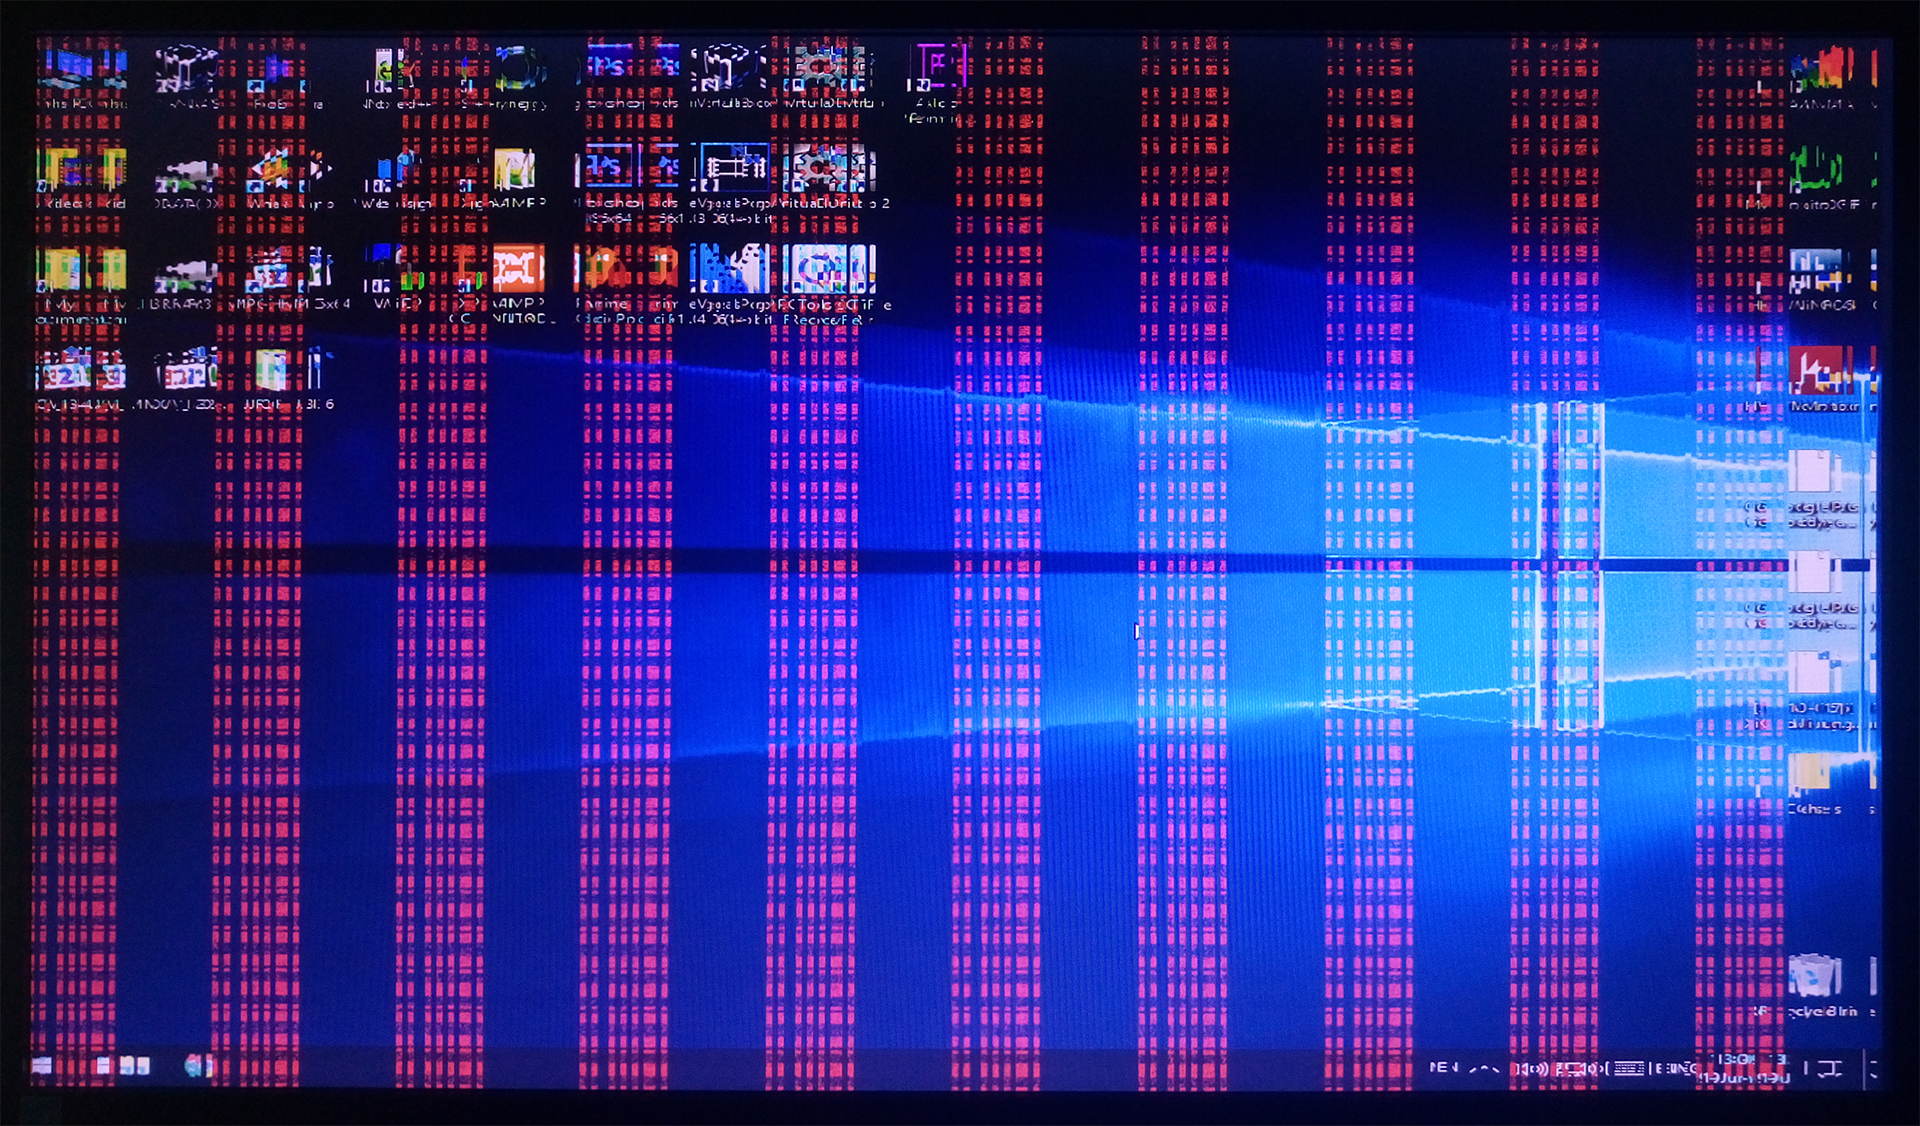 https://tehnoblog.org/wp-content/uploads/2019/06/Malfunctioning-Graphics-Card-with-Vertical-Stripe-Lines-and-Image-Artifacts-Windows-OS.jpg